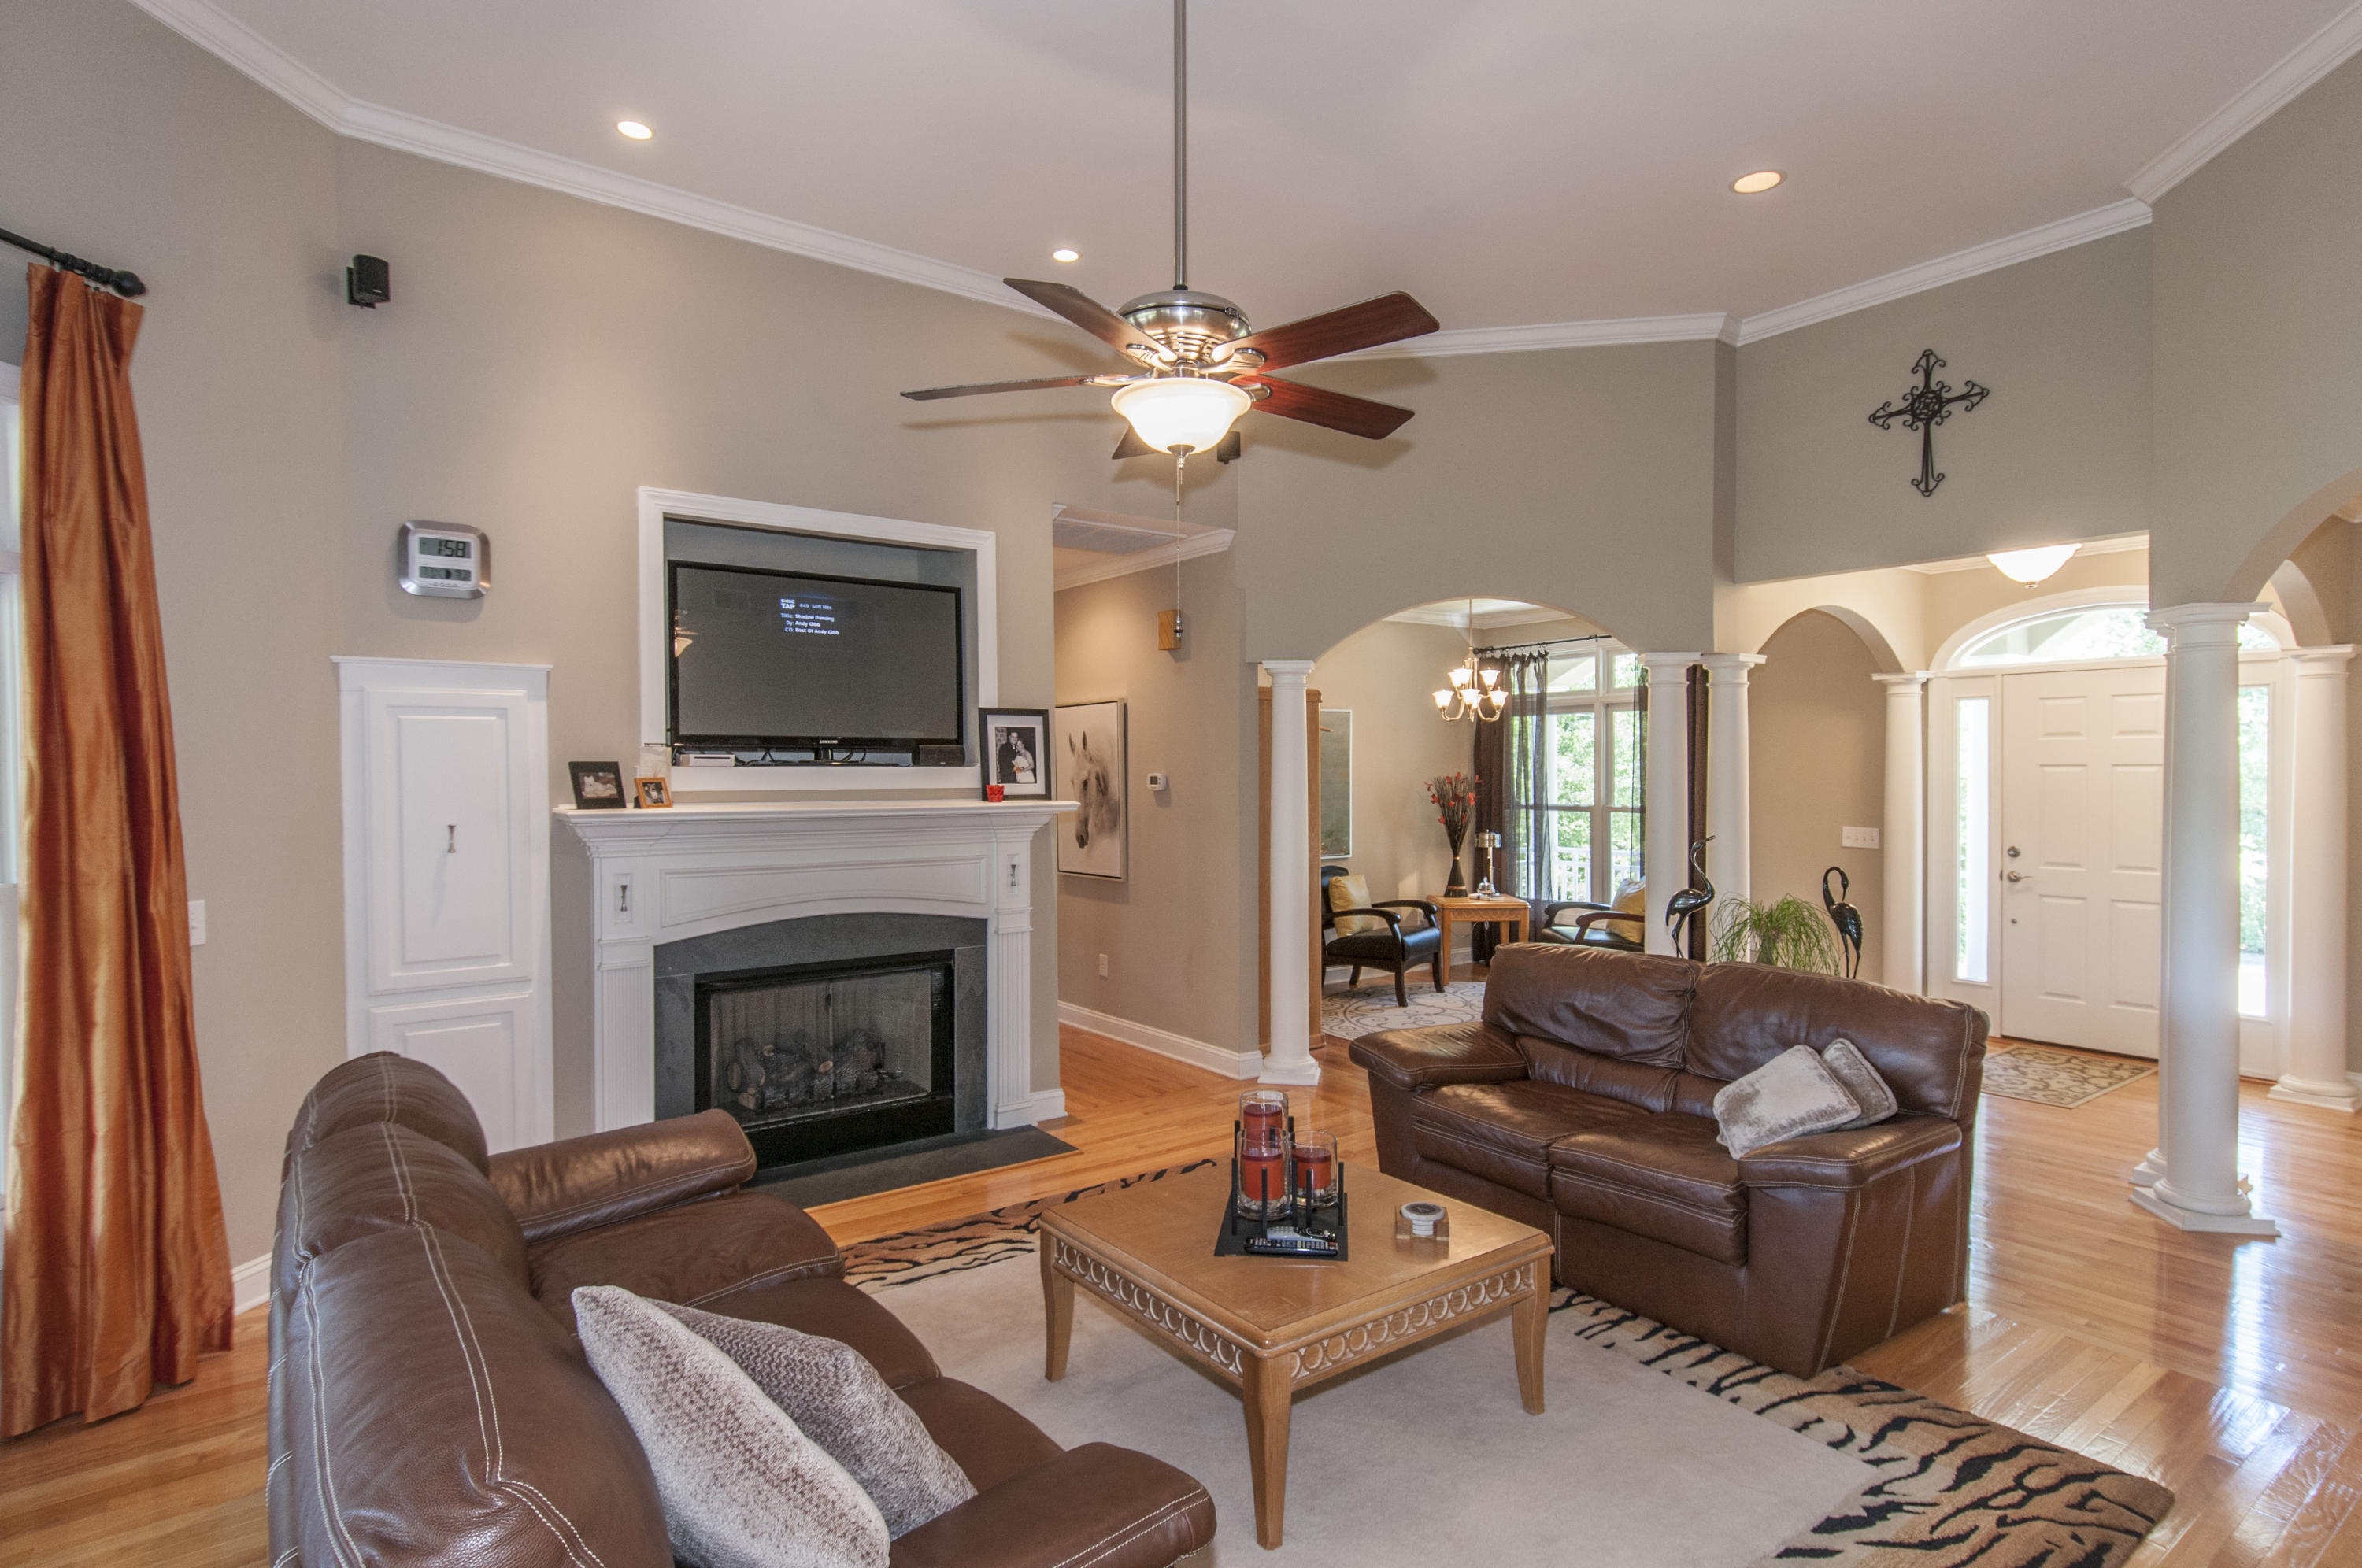 The Marshes at Rushland Landing Homes For Sale - 3022 Rushland Mews, Johns Island, SC - 43